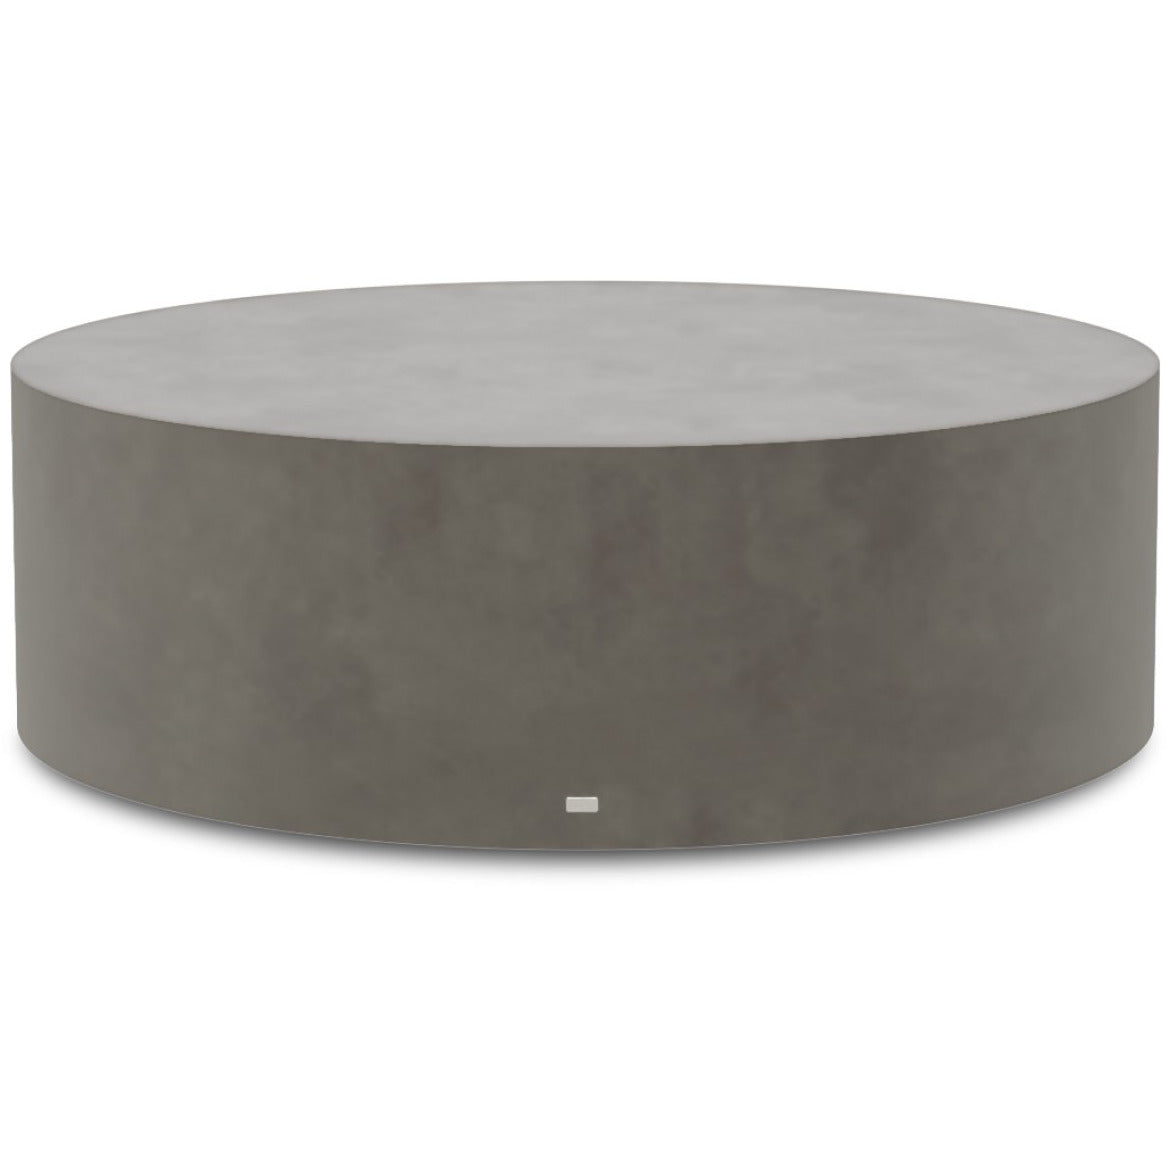 Circ L1 Concrete Coffee Table - Outdoor Living Essentials